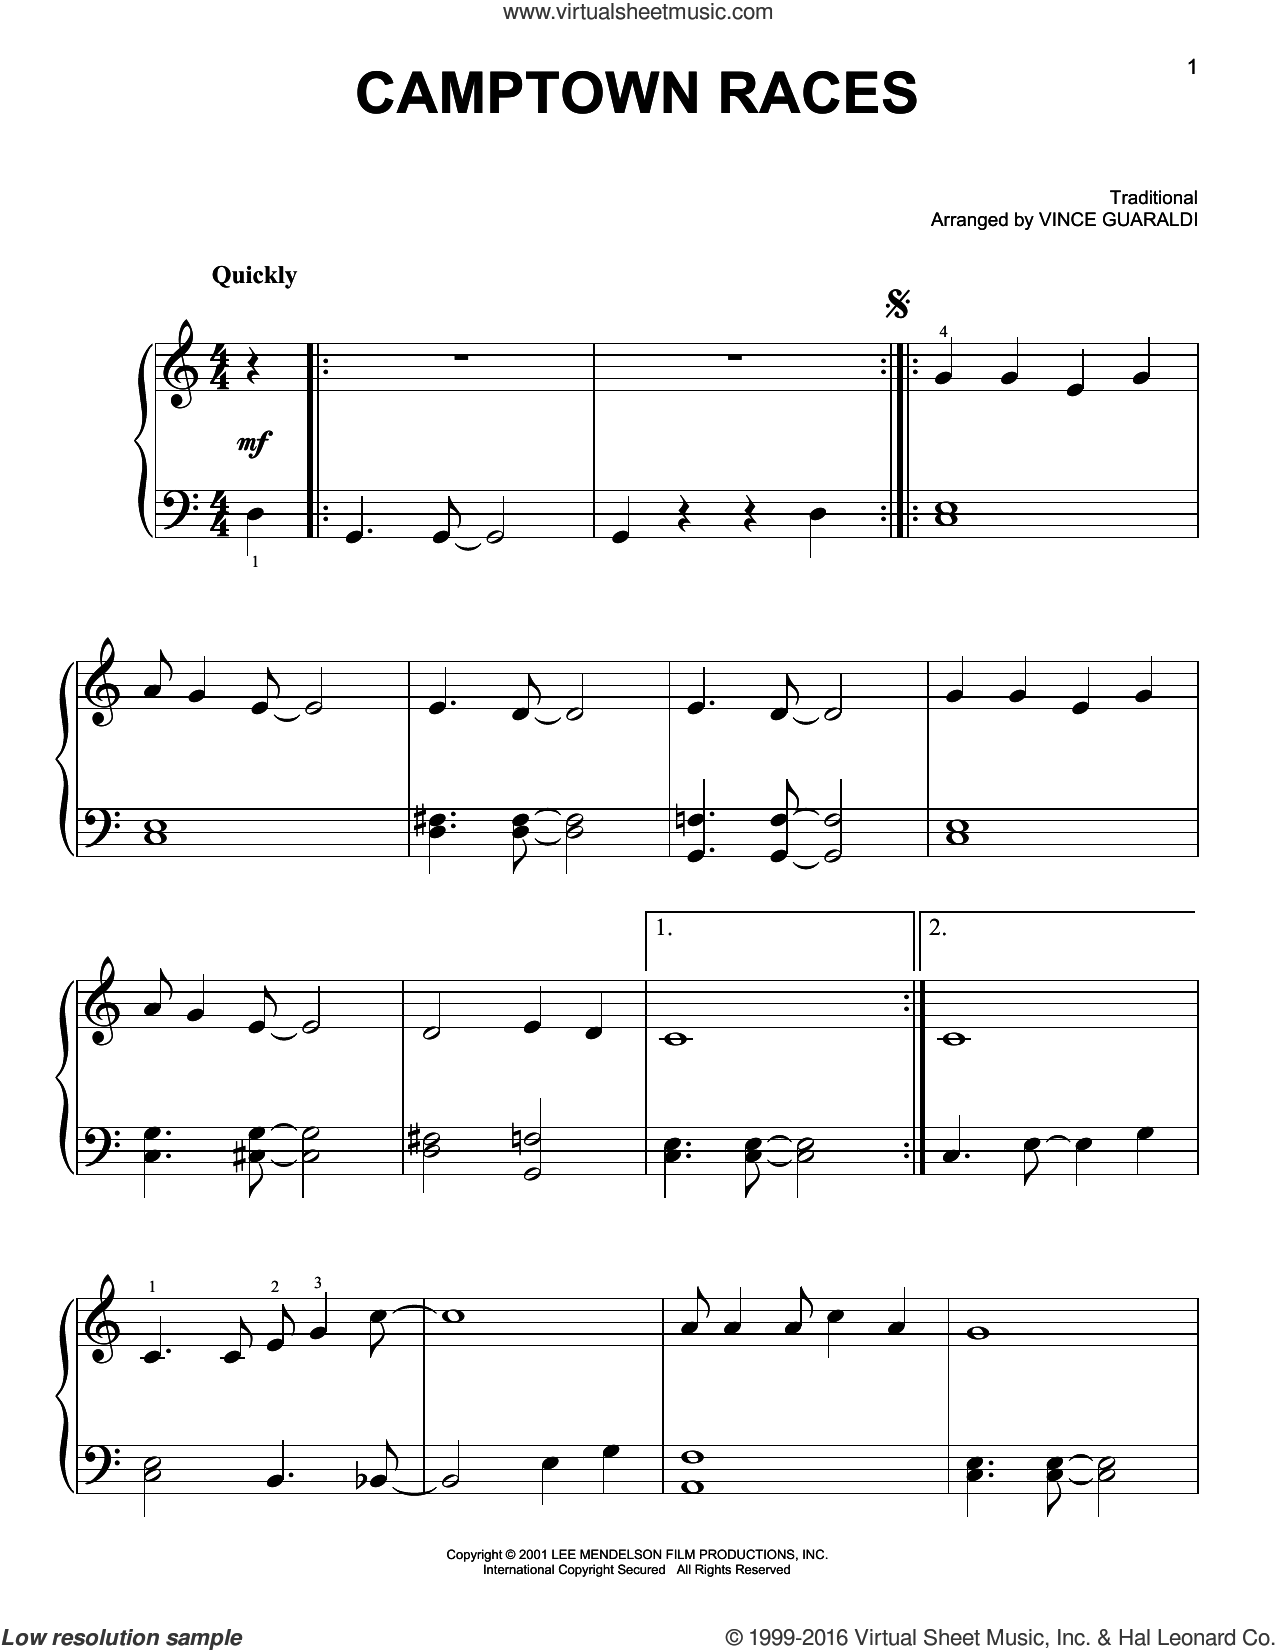 Camptown Races sheet music for piano solo by Vince Guaraldi, easy skill level